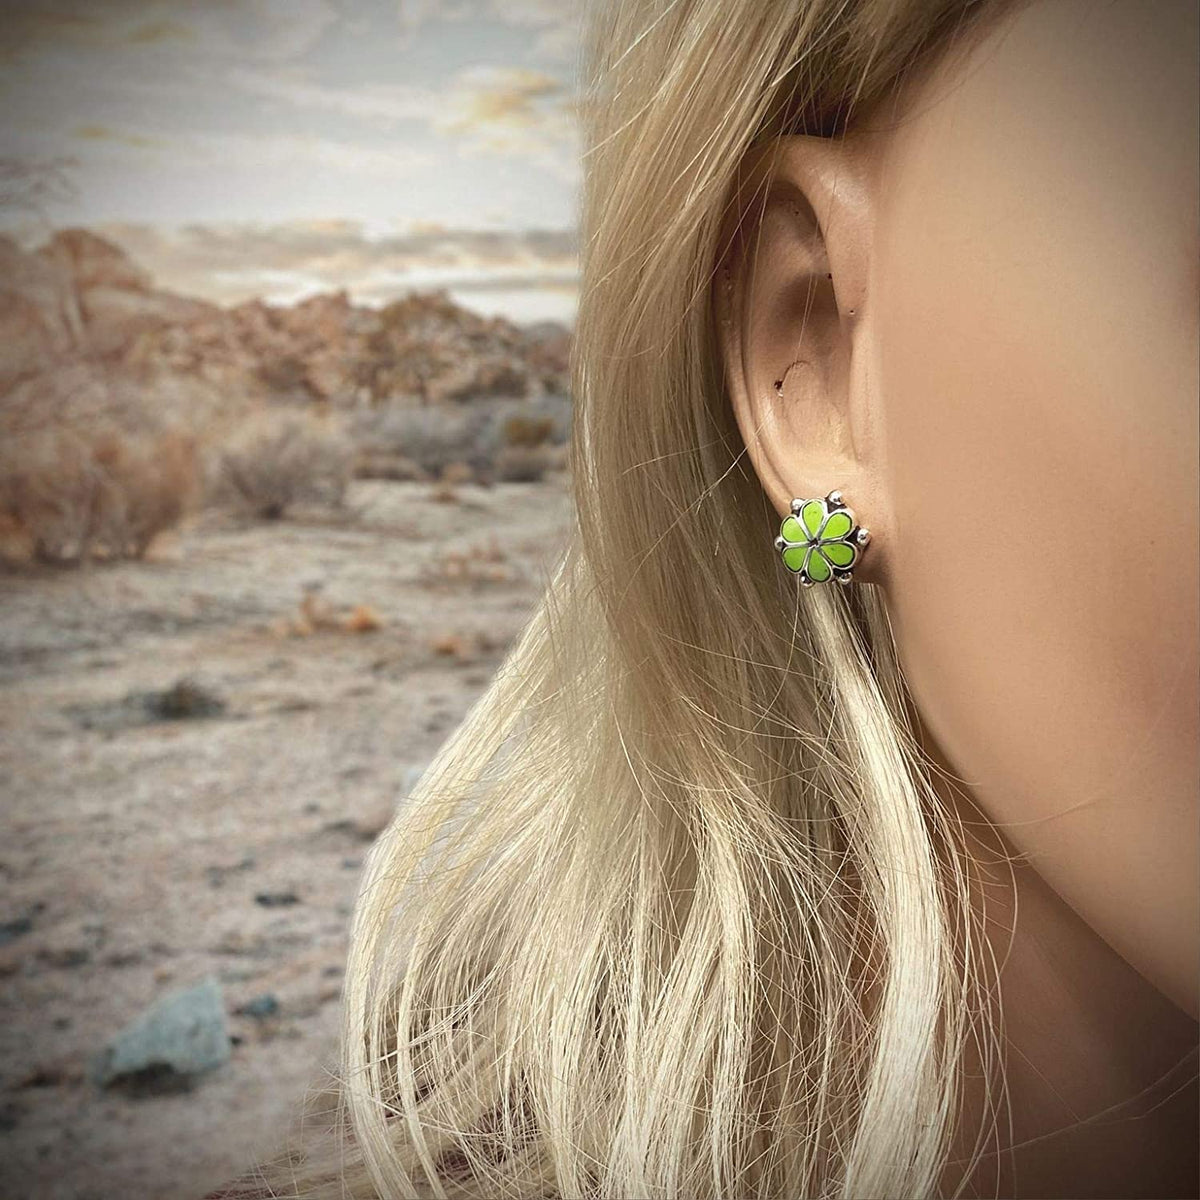 Bright Green Gaspeite Stud Earrings, 925 Sterling Silver, Native American USA Handmade, Nickel Free, Natural Stone